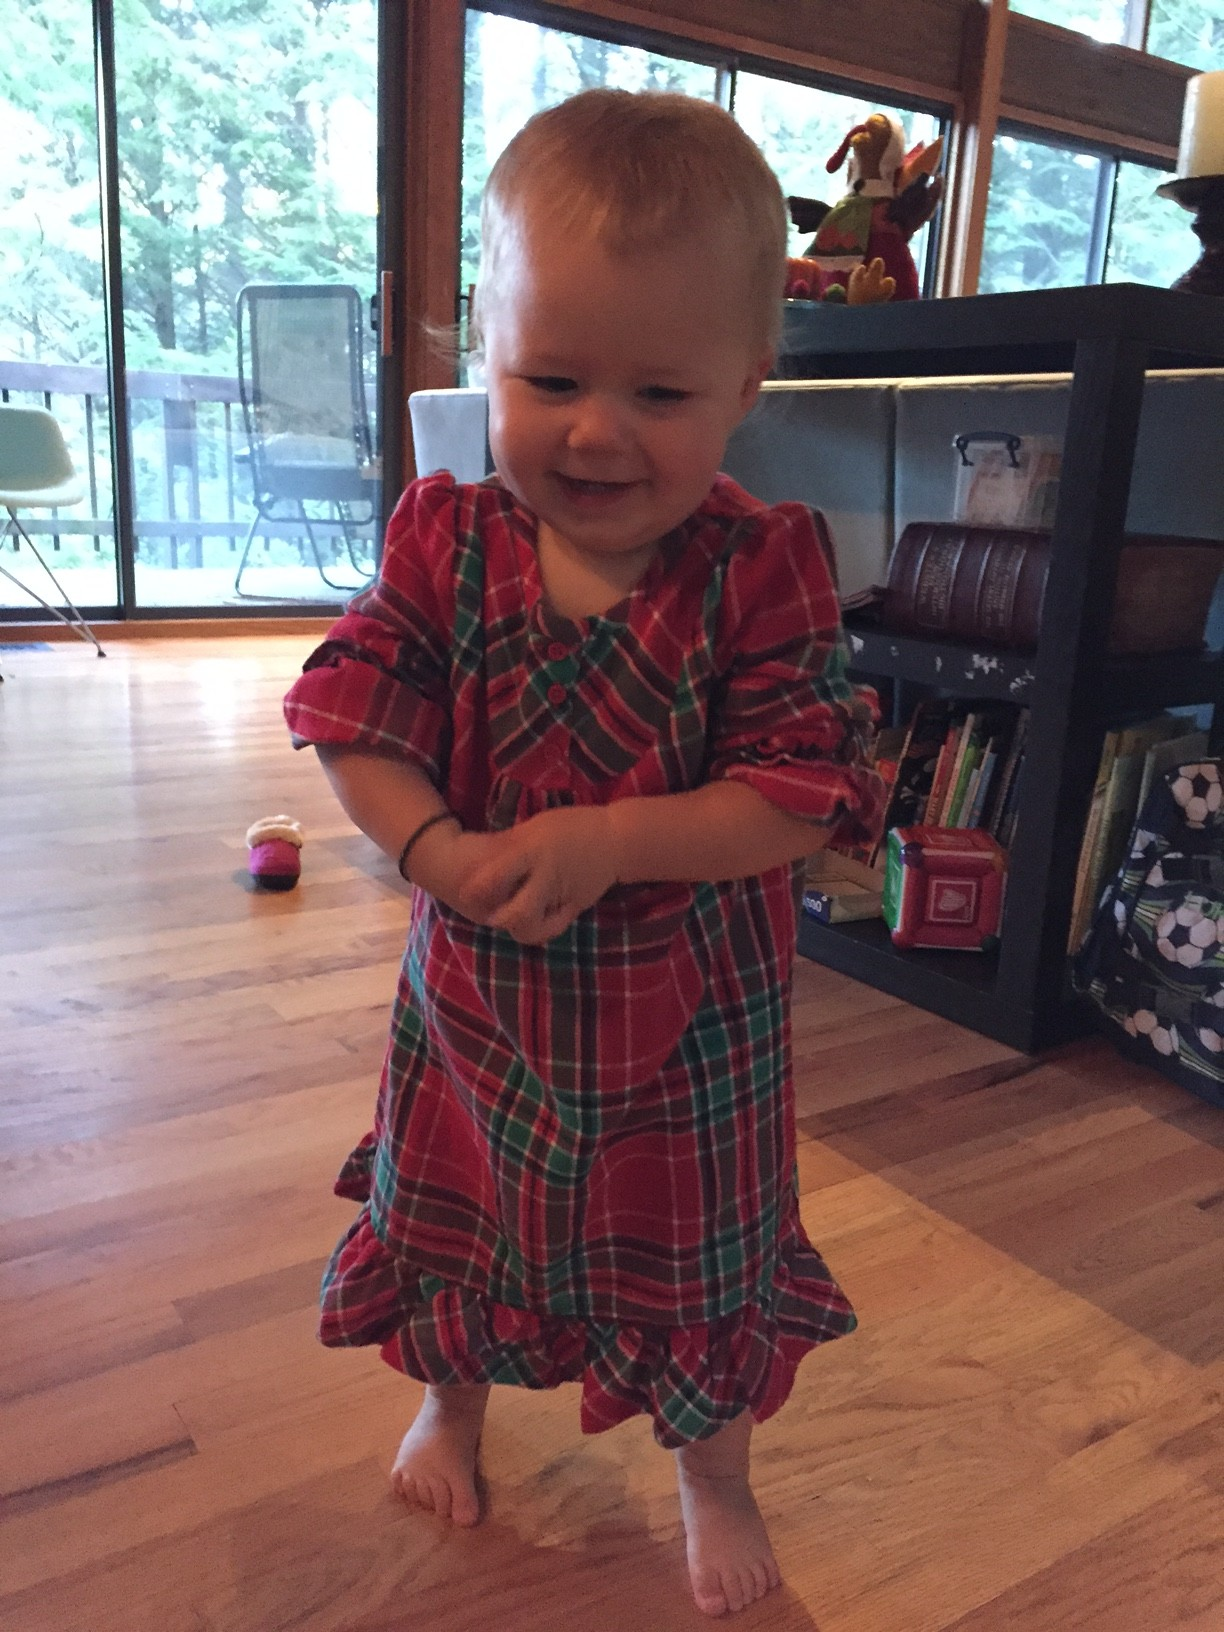 My daughter Kate sporting a new nightgown, a gift from her Grandma who also sent matching jams to my sons.